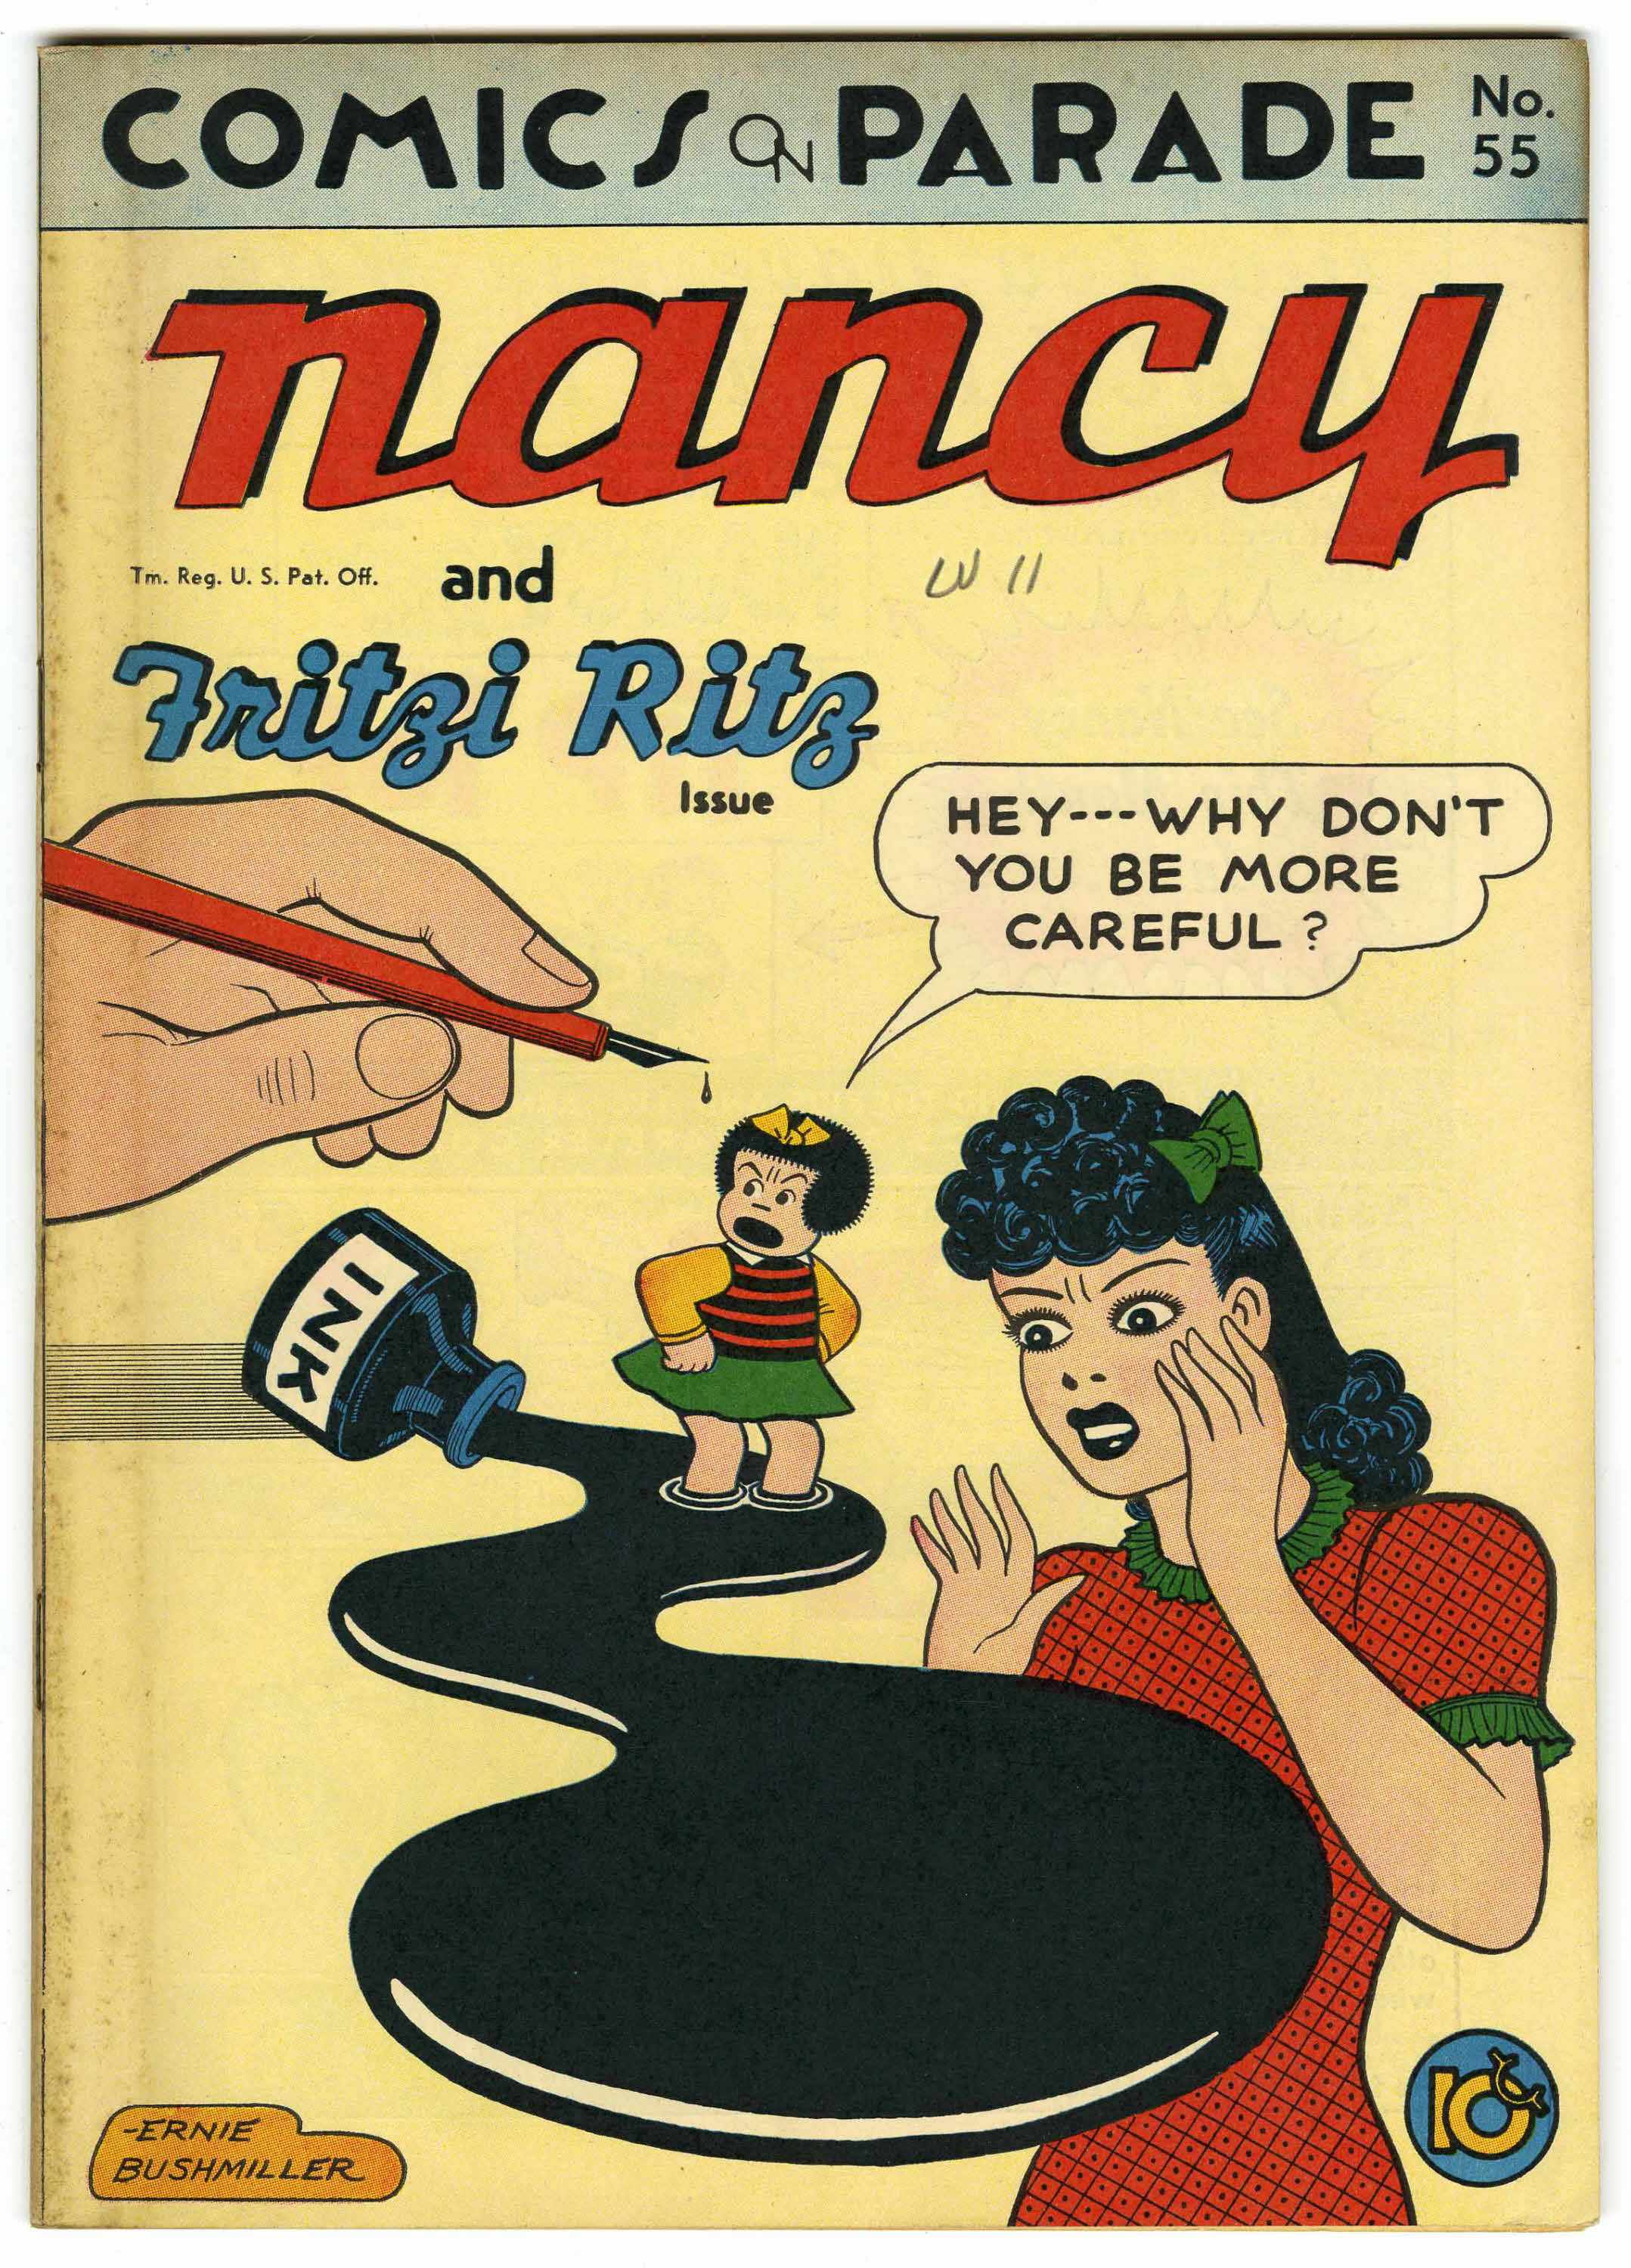 Comics On Parade #55 Nancy and Fritzi Ritz 1946